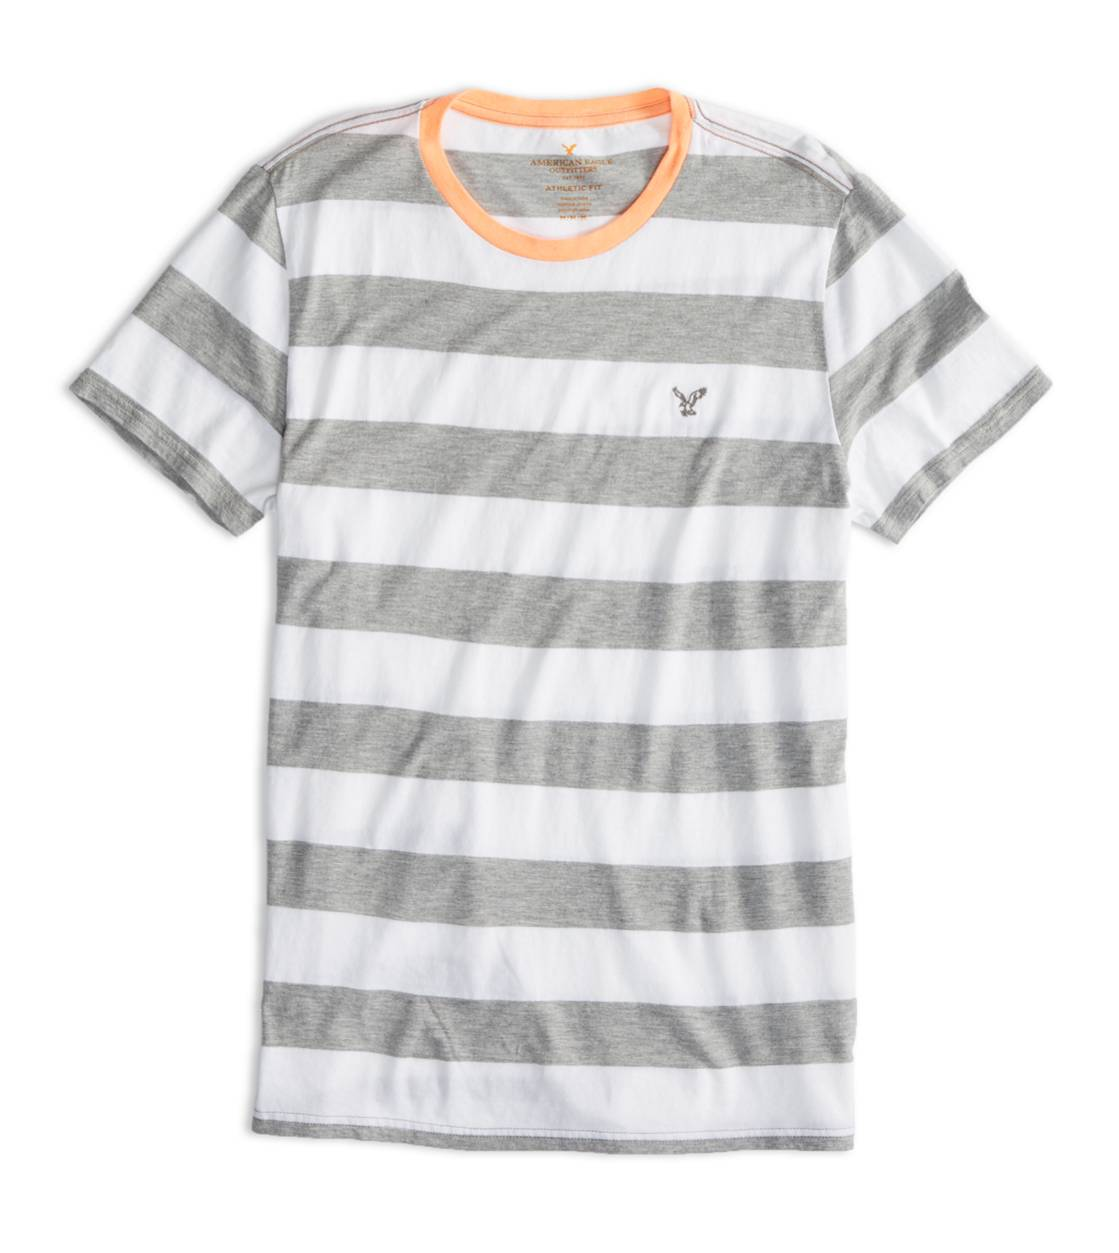 Derby Grey Marl AEO Factory Striped T-Shirt